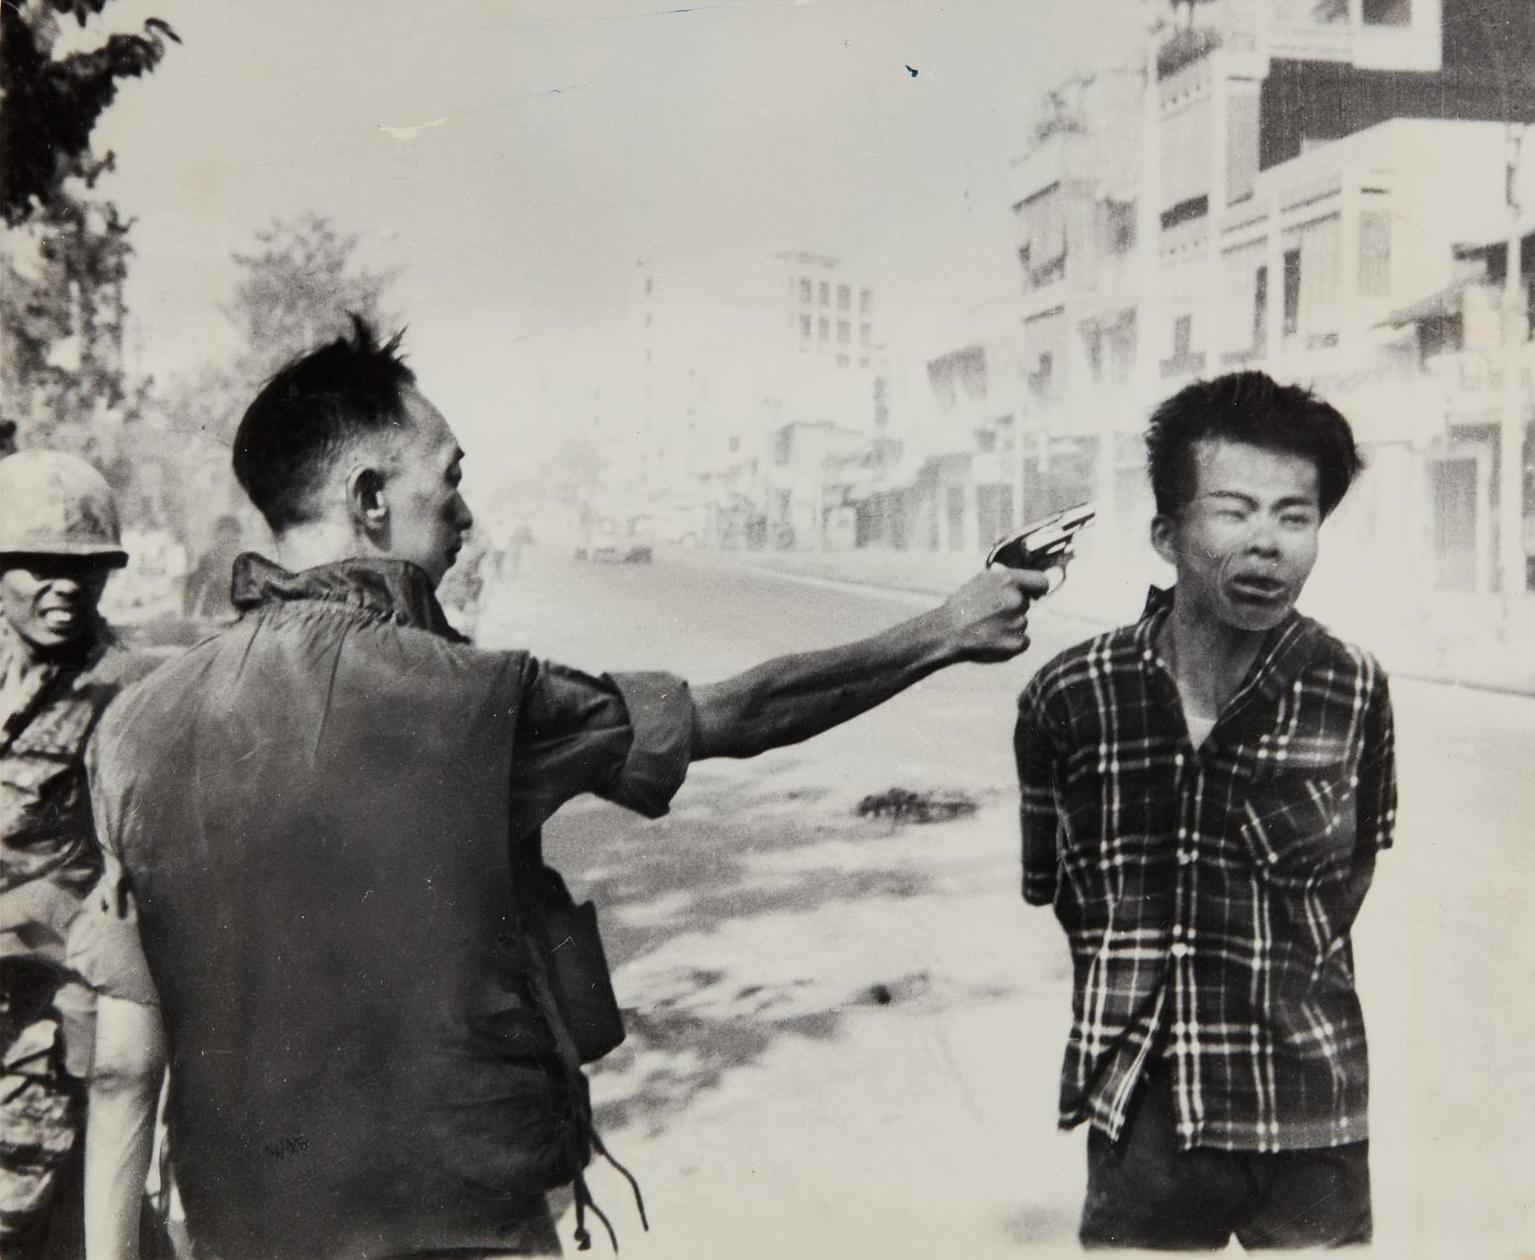 Eddie Adams - General Nguyen Ngoc Loan Executing A Viet Cong Prisoner In Saigon-1968